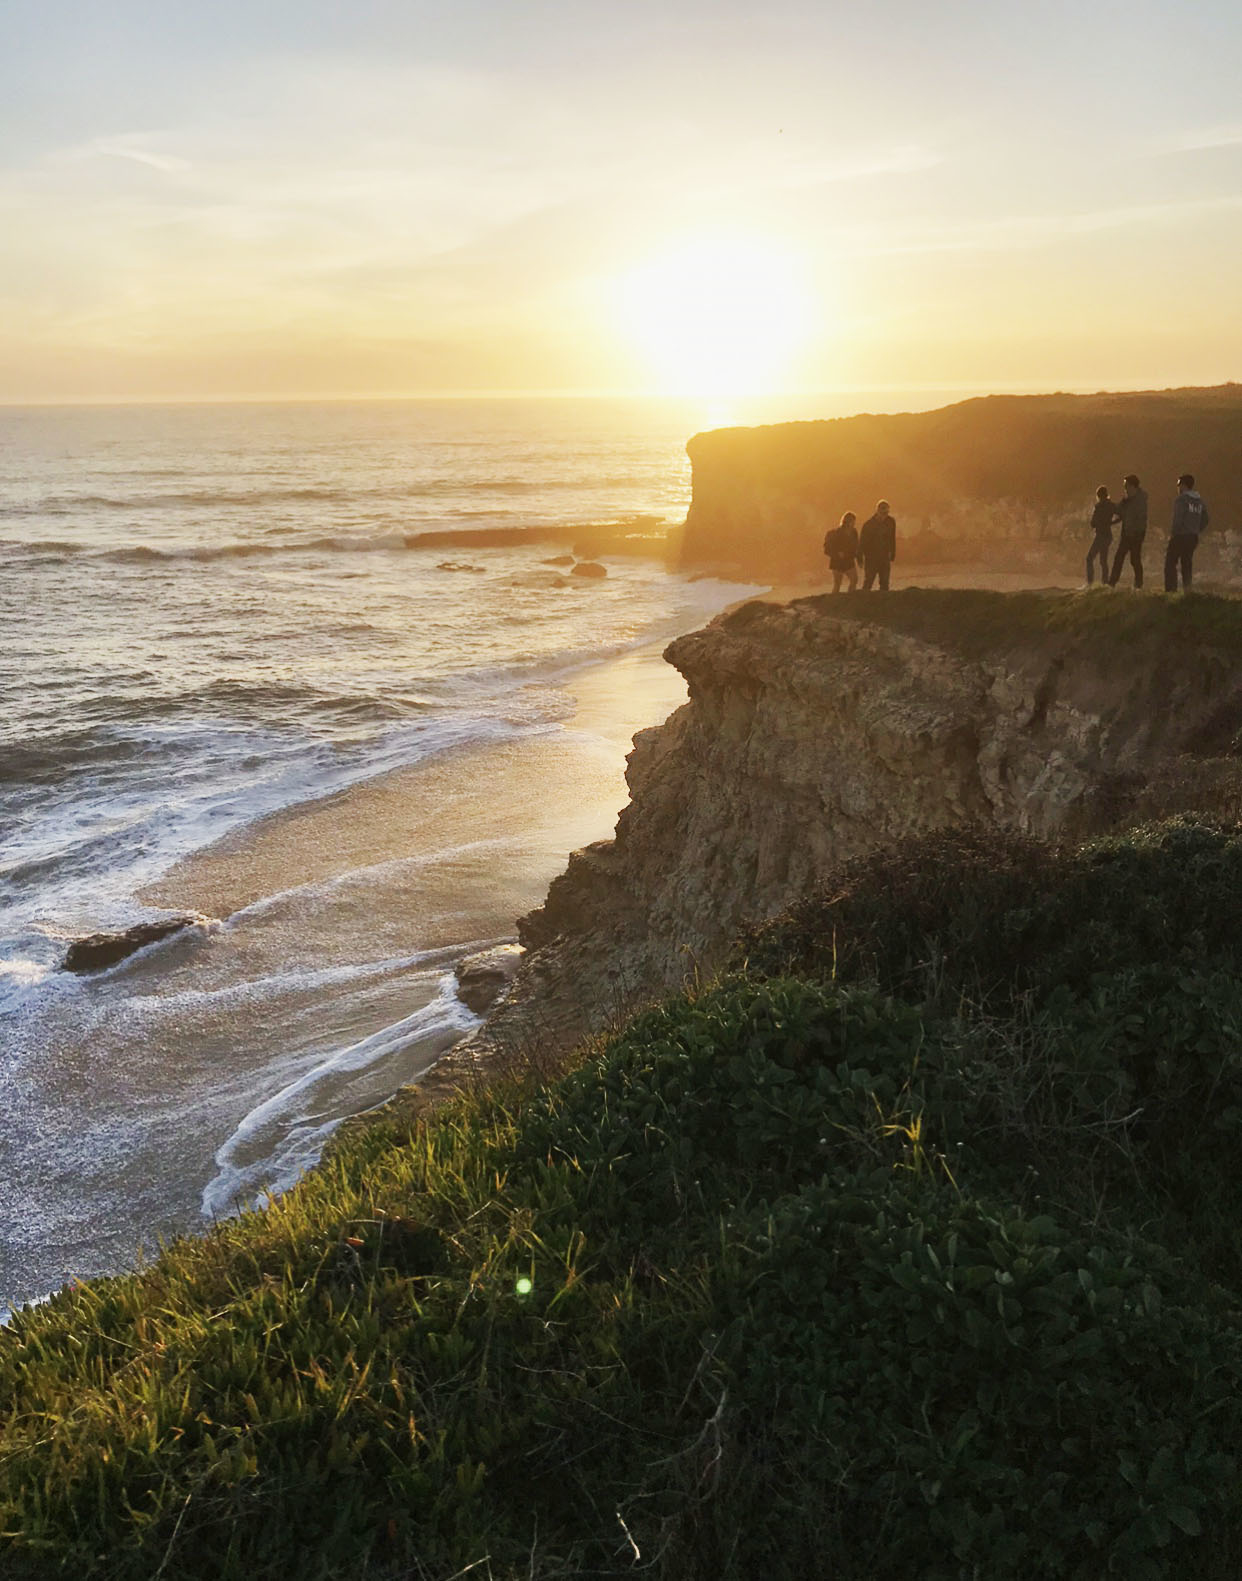 A series of tall cliffs speckled with people along the coast with the sunsetting in the distance